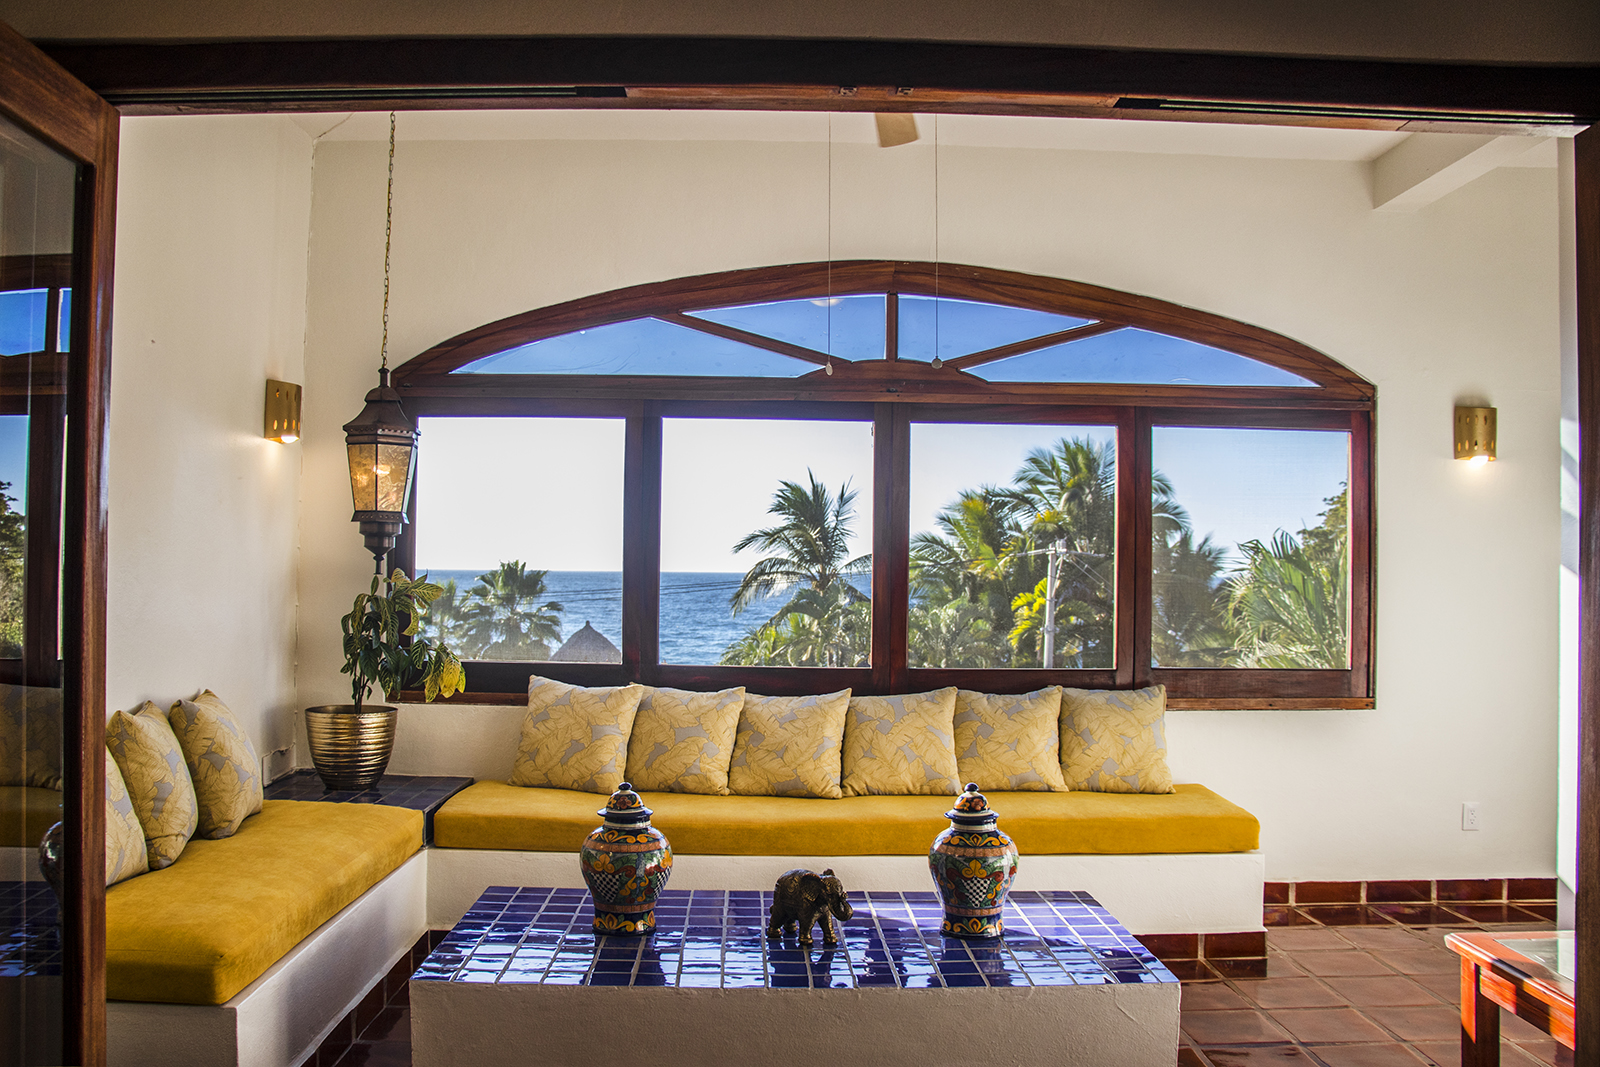 Private Rental Apartment - San Pancho, Nayarit, Mexico